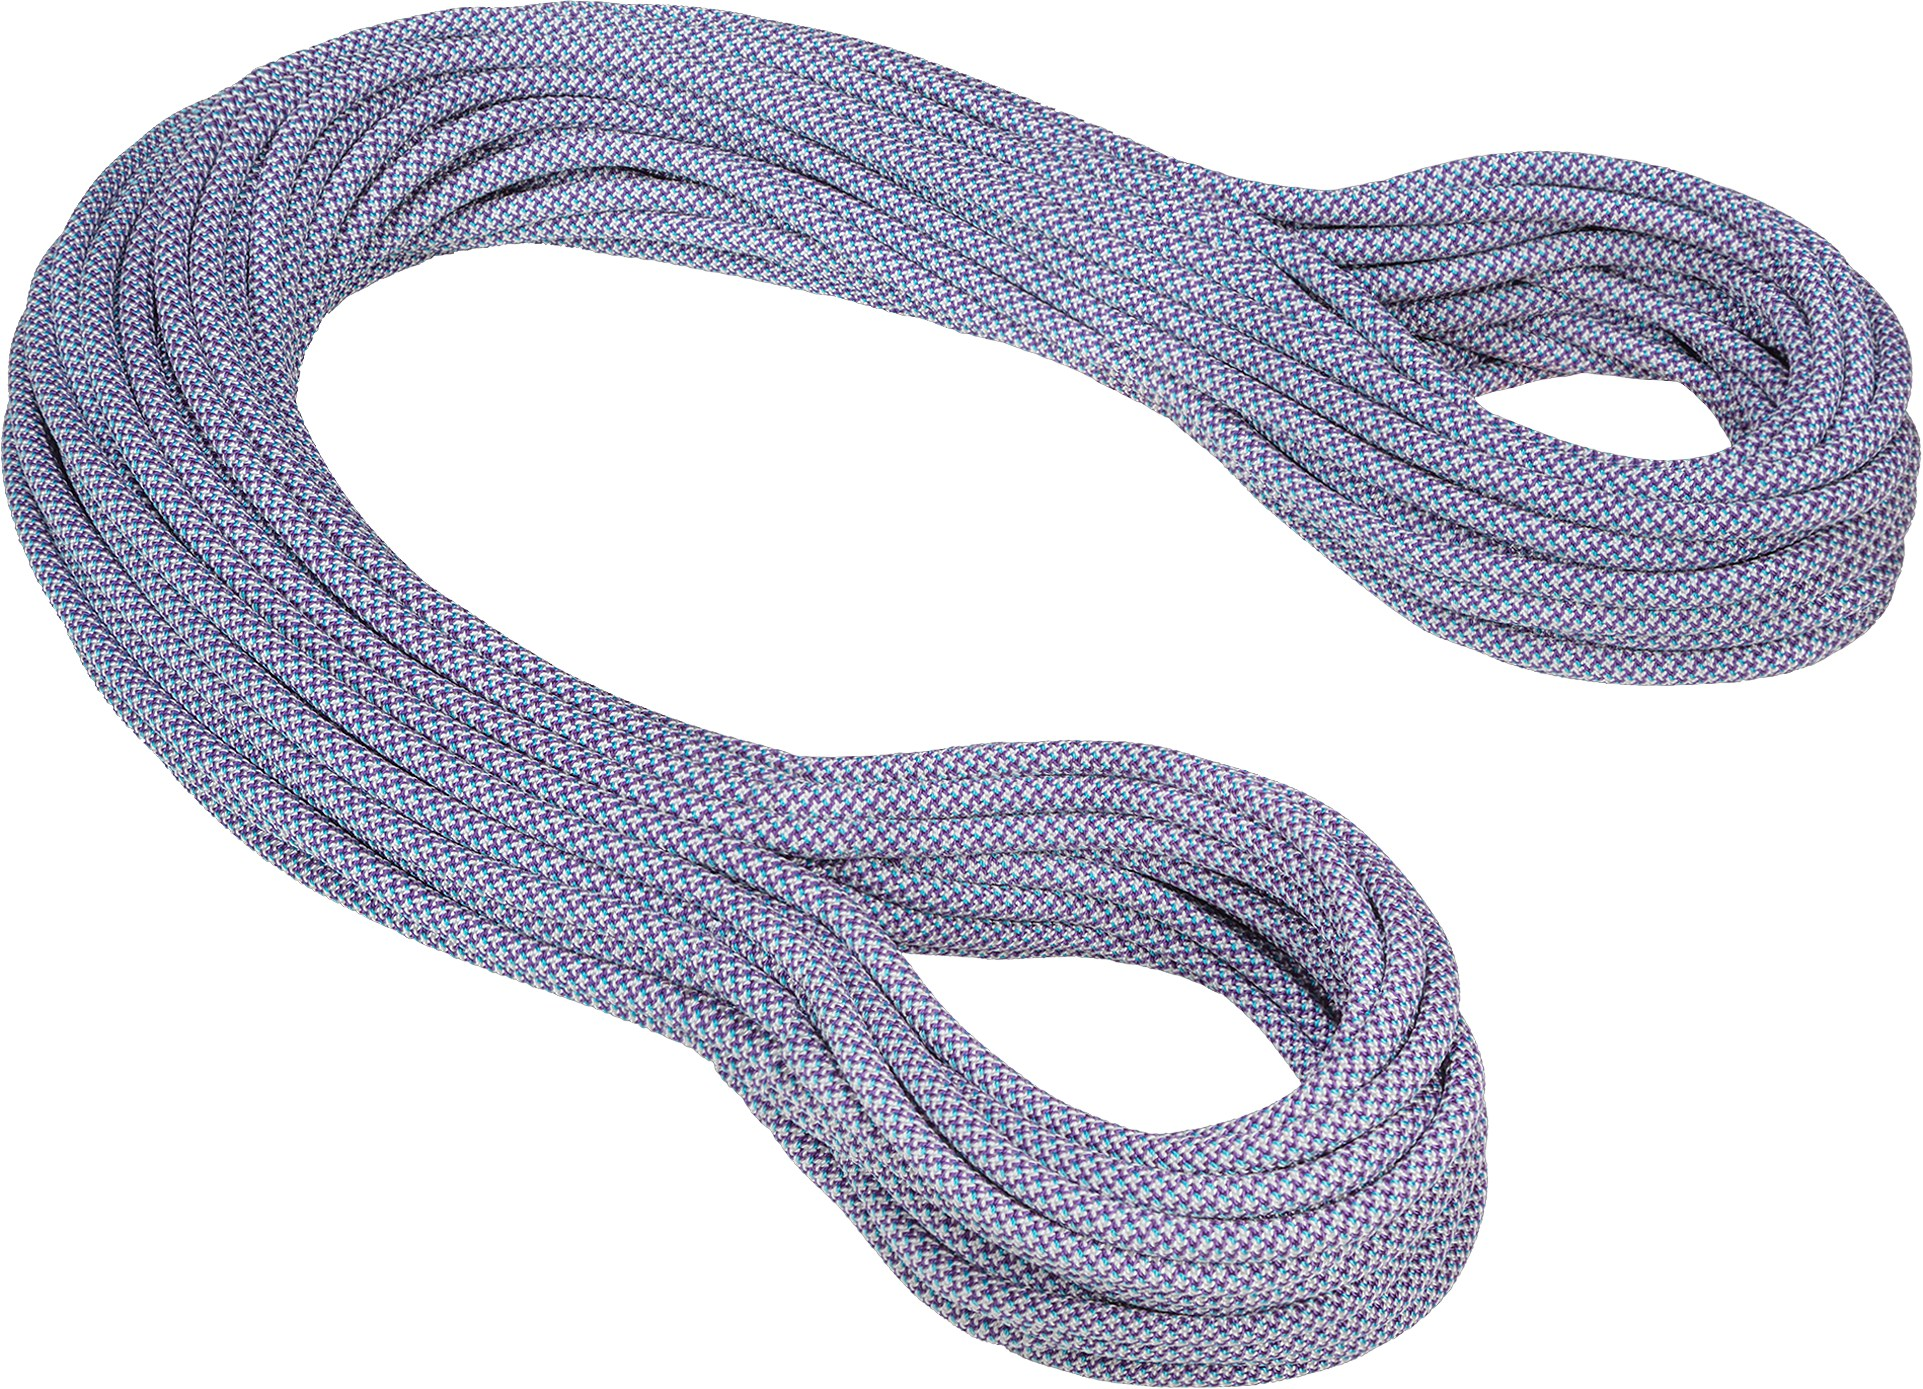 Mammut Eternity Classic 9.8mm x 60m Non-Dry Rope